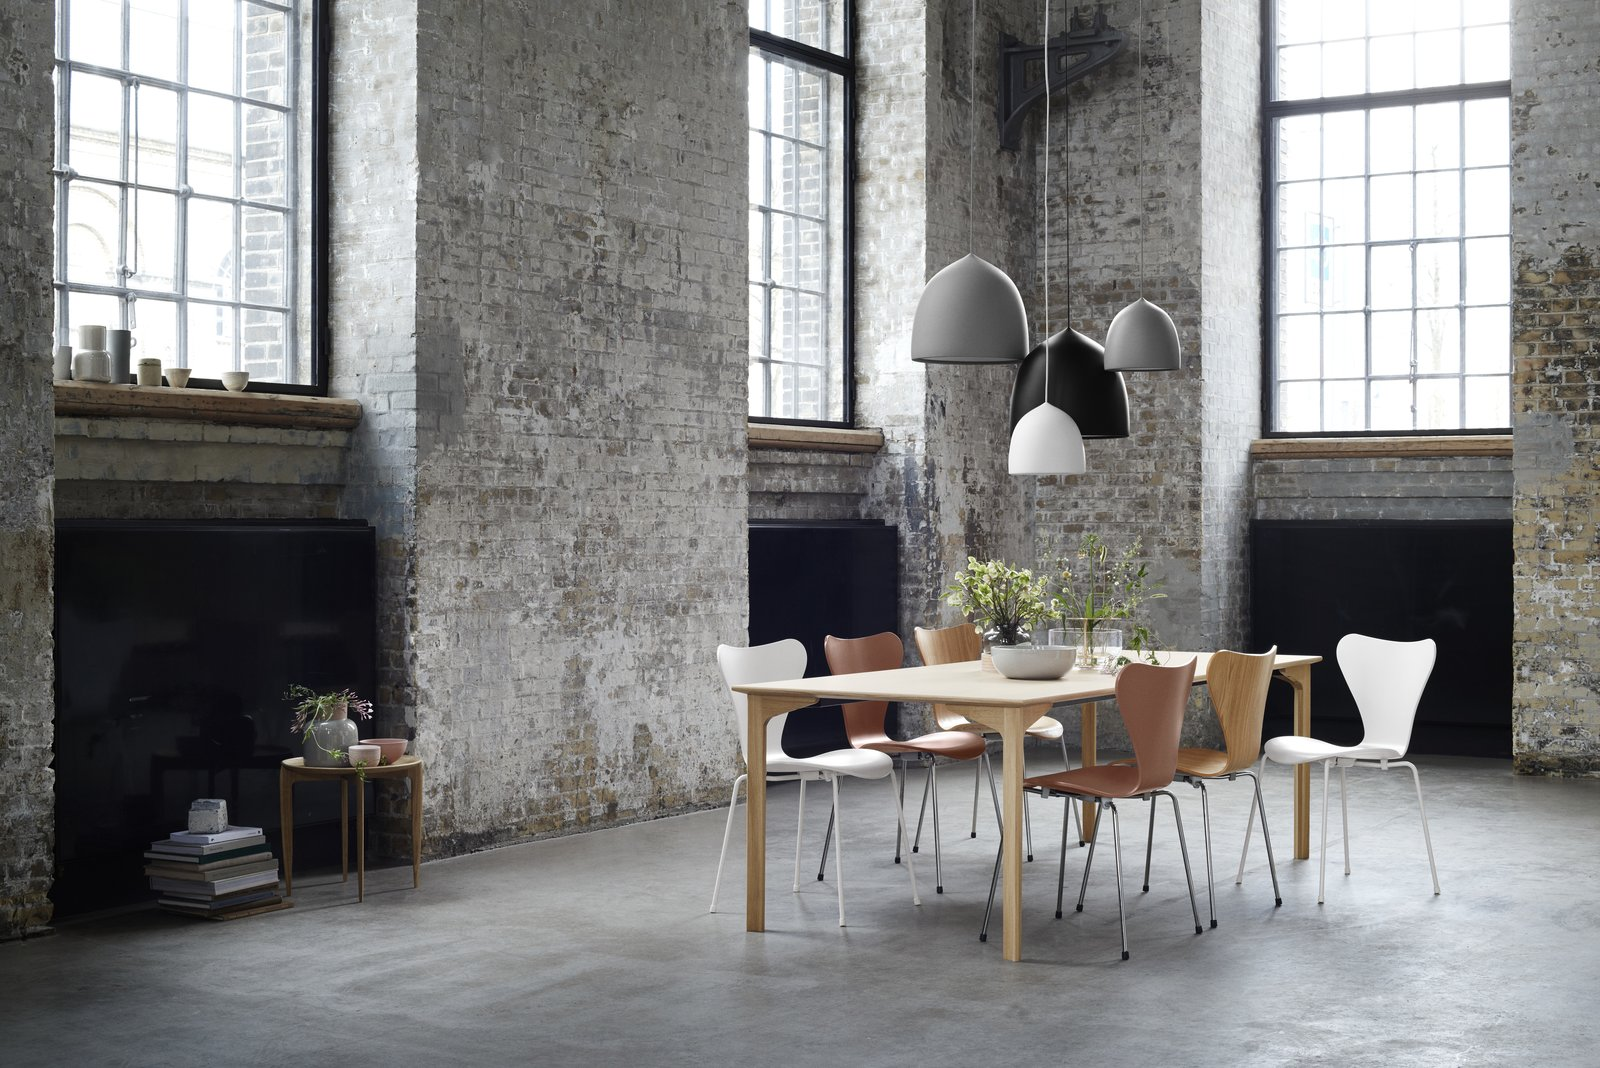 Photo 1 of 2 in Fritz Hansen Celebrates its First Anniversary in San Francisco